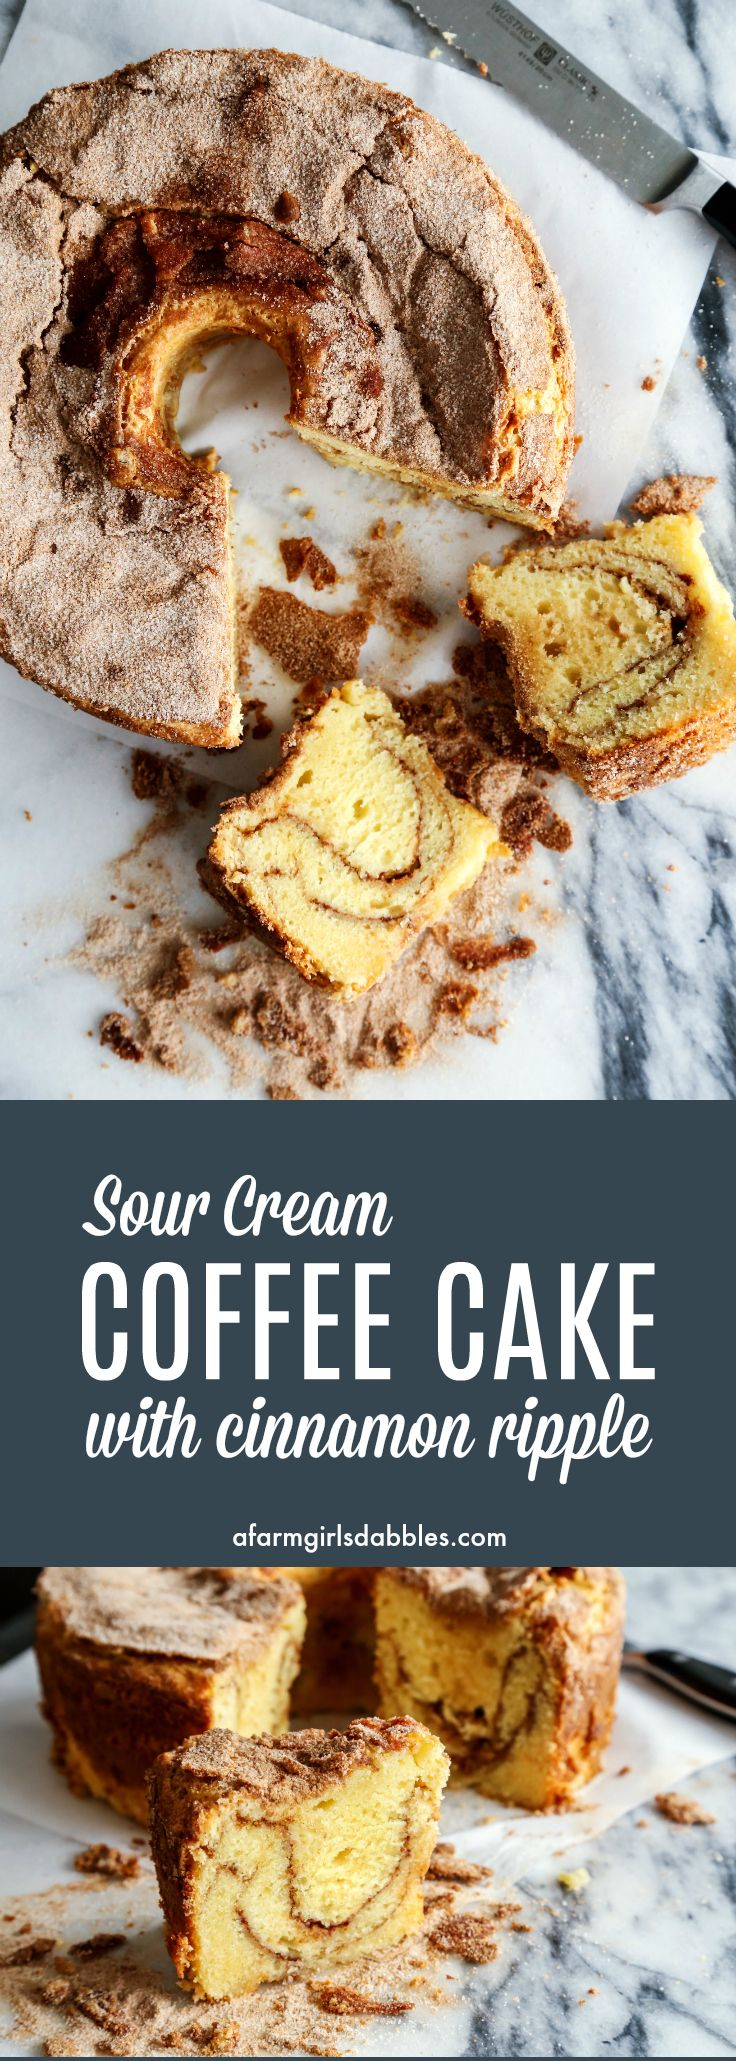 Sour Cream Coffee Cake with Cinnamon Ripple from afarmgirlsdabbles.com - The best coffee cakes are made with sour cream, and with a good amount of cinnamon sugar. You will not be disappointed with this easy recipe!